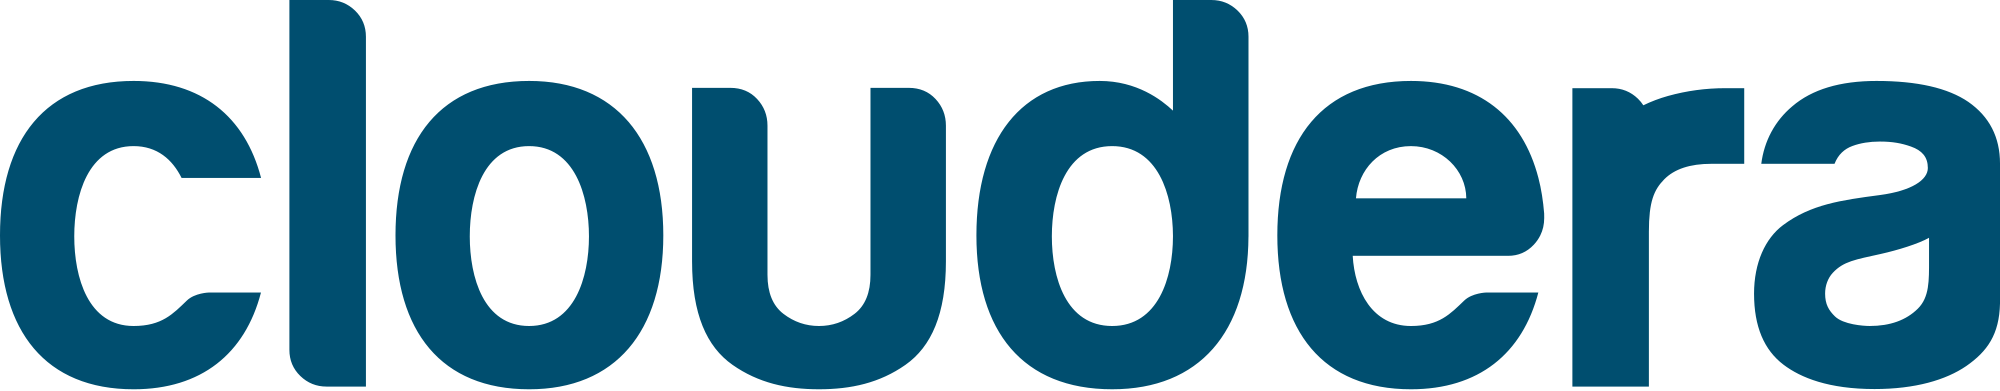 Supported Big Data Platforms: Cloudera